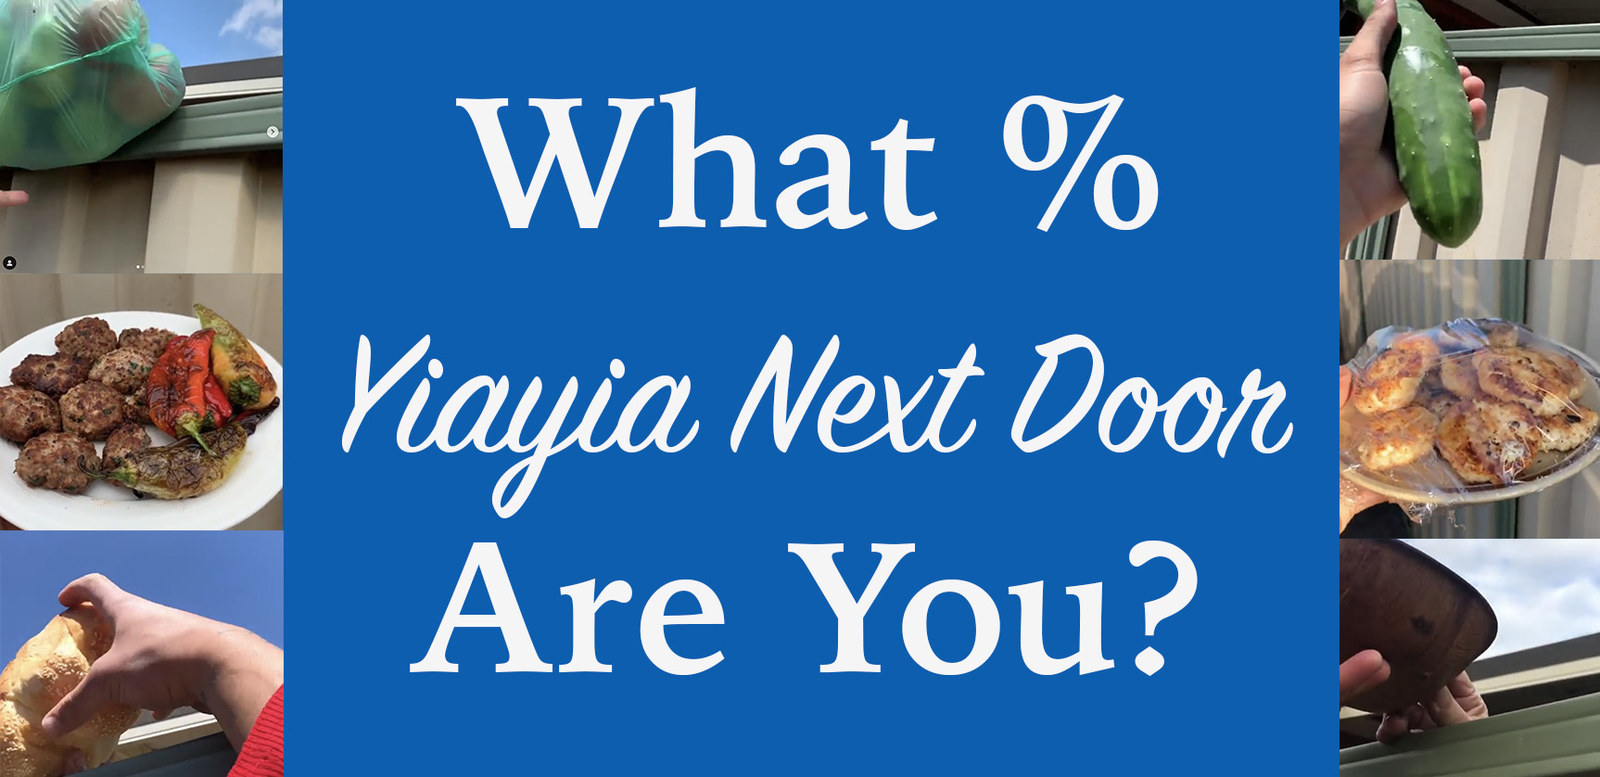 """What % """"Yiayia Next Door"""" Are You?"""